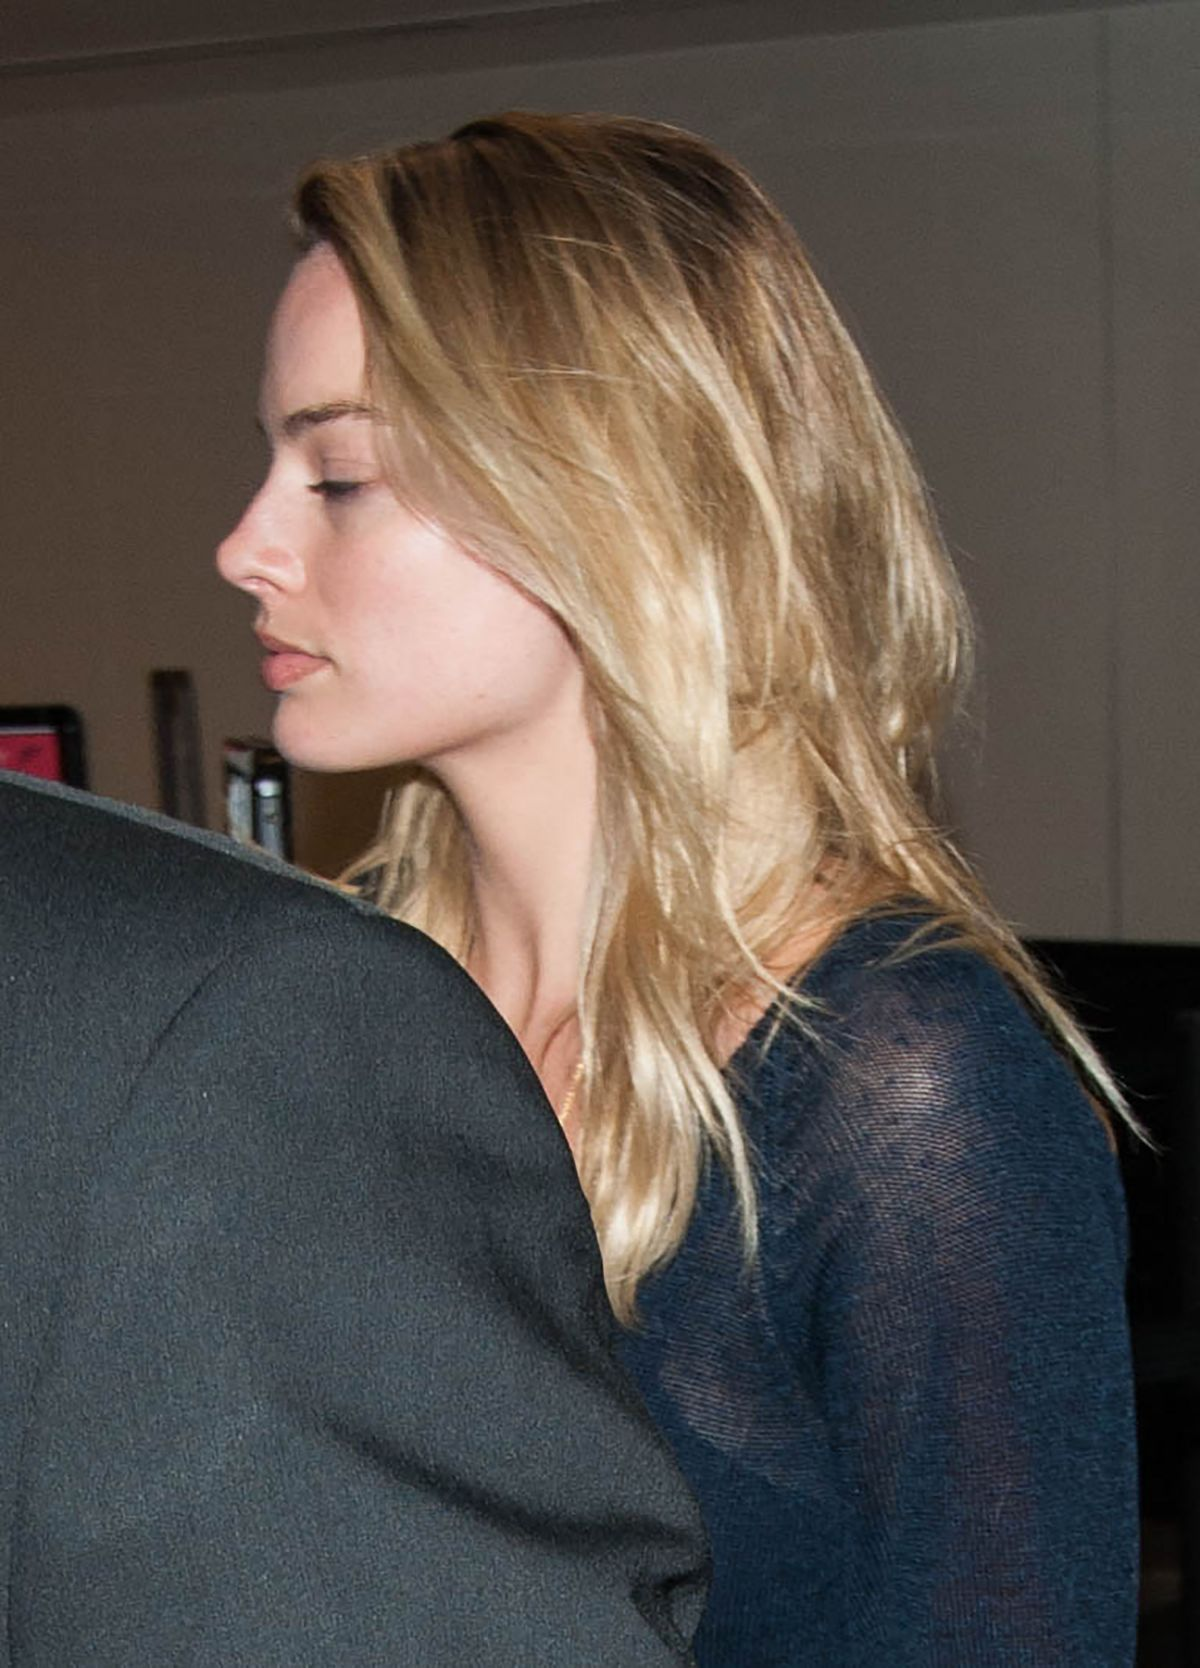 Margot robbie at lax airport in los angeles nudes (13 pics)